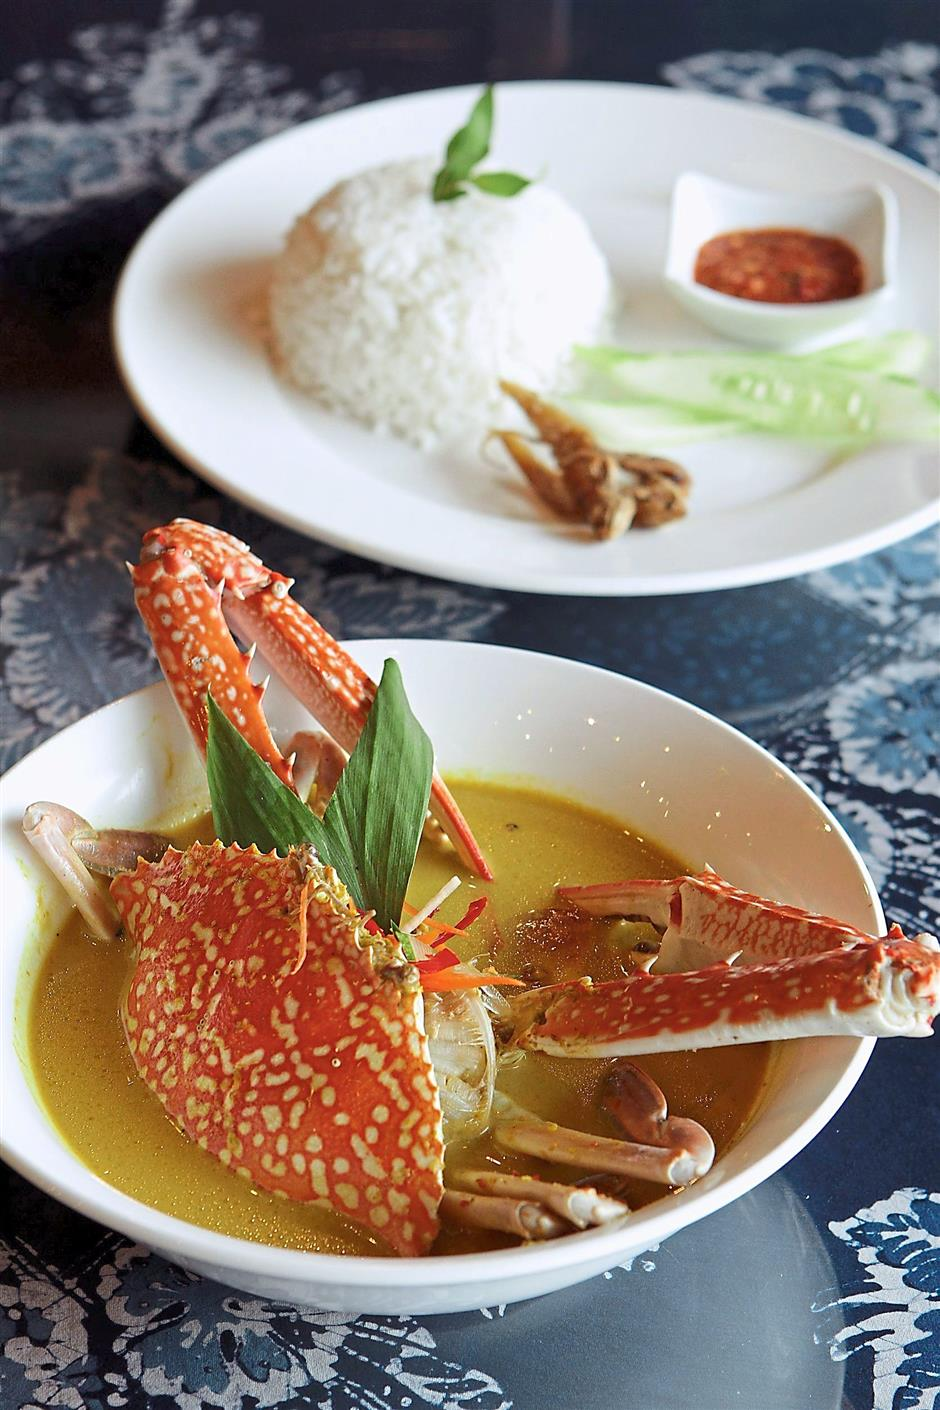 This dish might look tame but sure packs a punch with cili padi heat and soft, sweet crab meat.